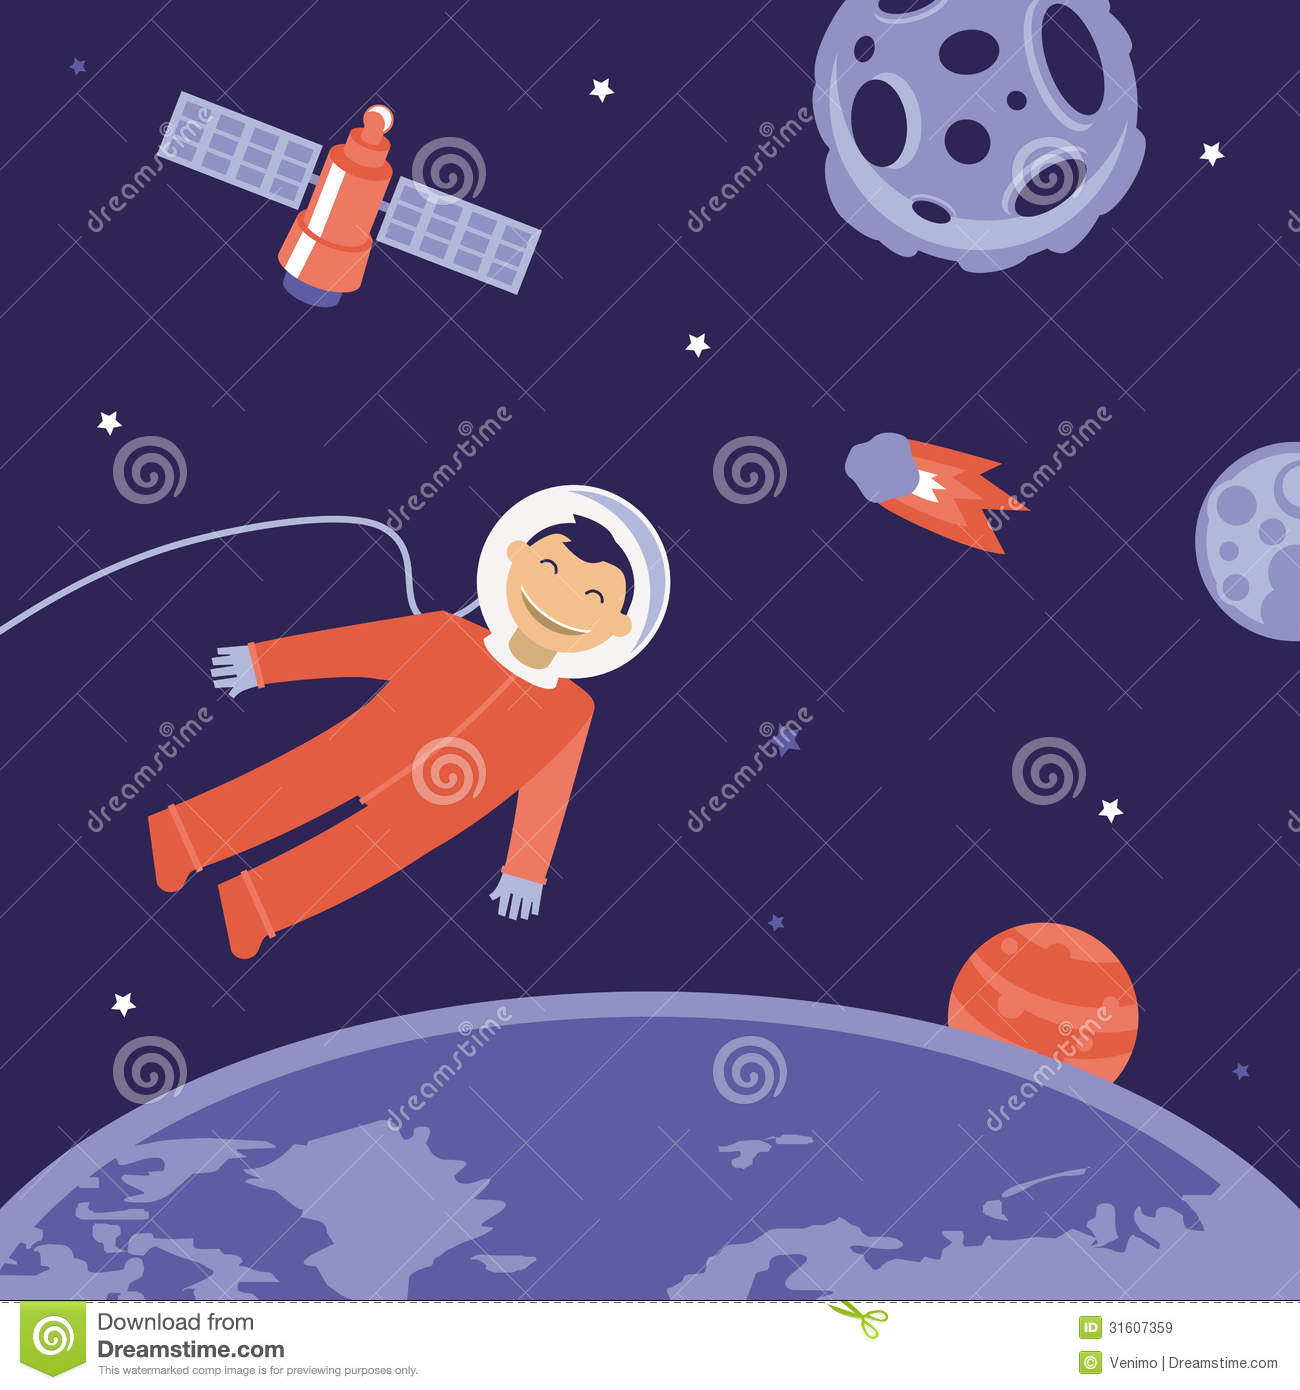 3d Wallpaper Free Download Girl Vector Cartoon Astronaut In Space Royalty Free Stock